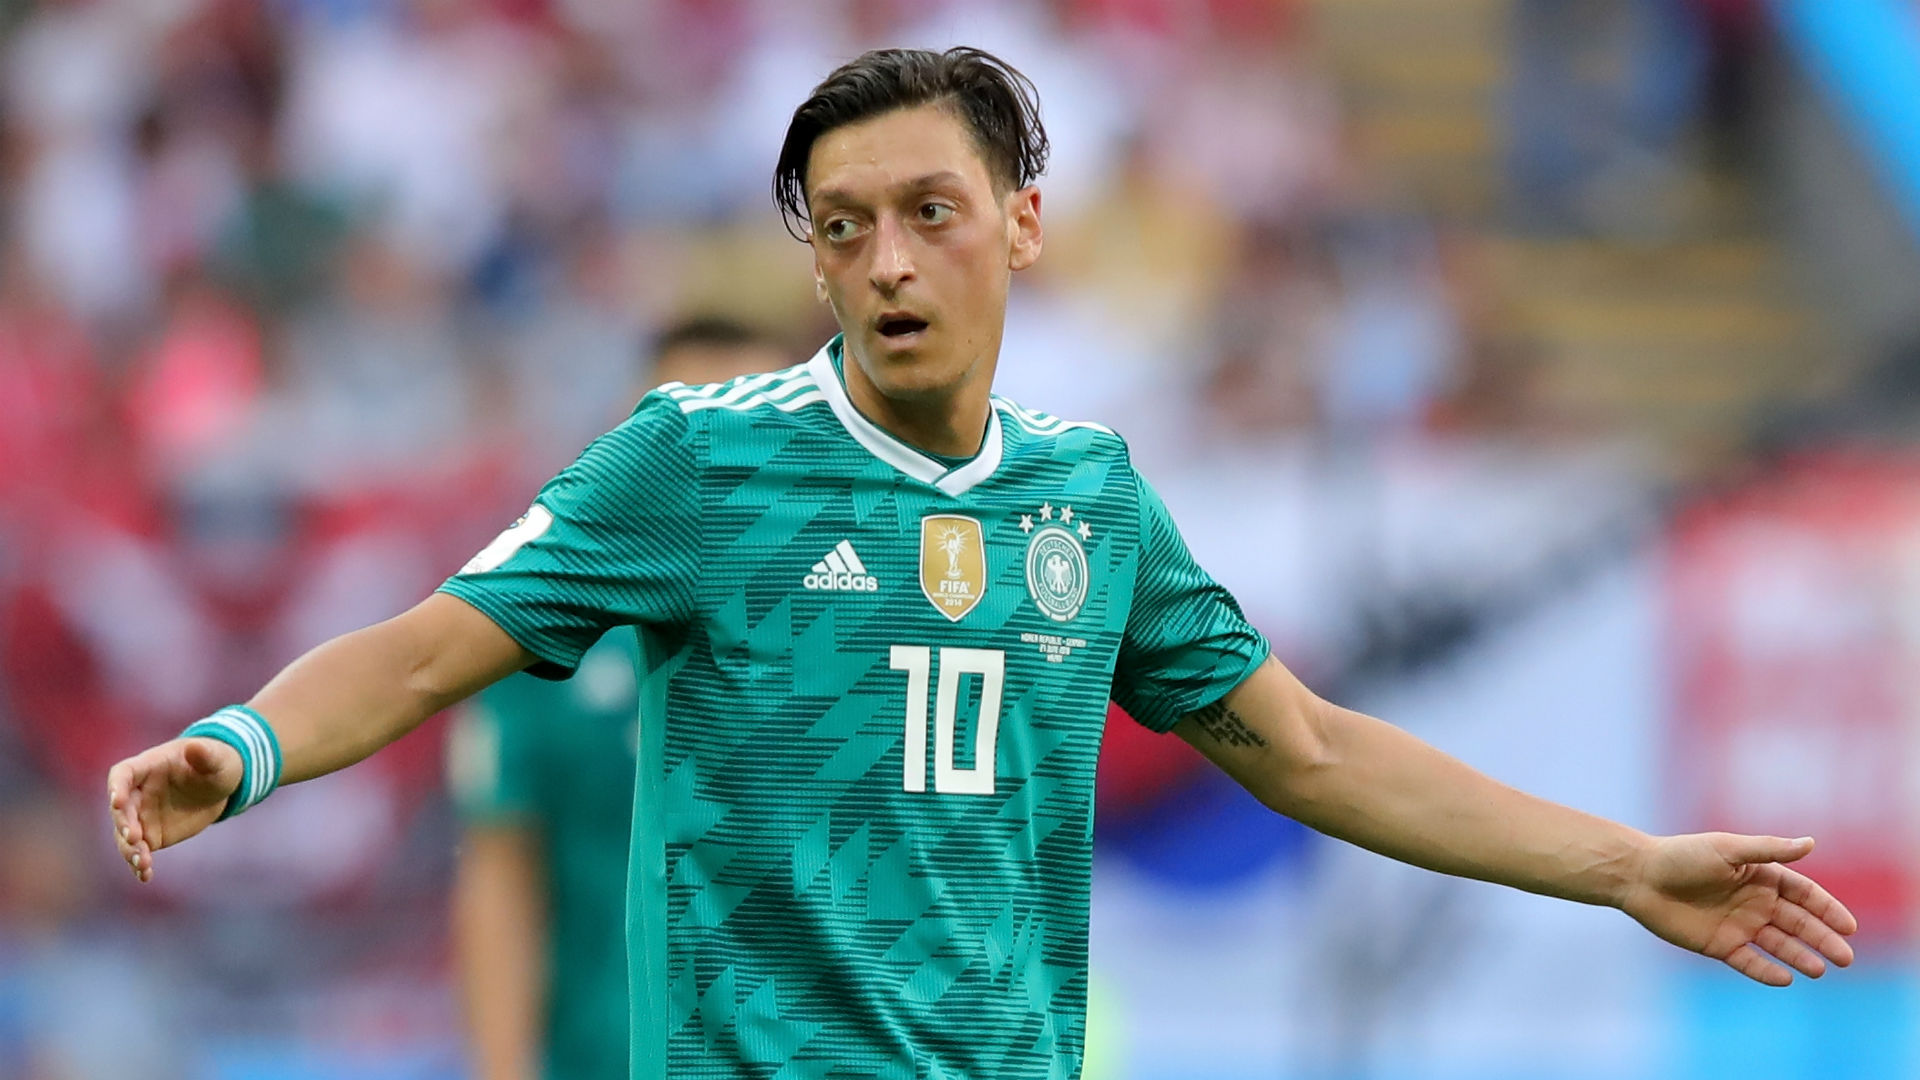 Germany players accept Ozil's retirement - Neuer